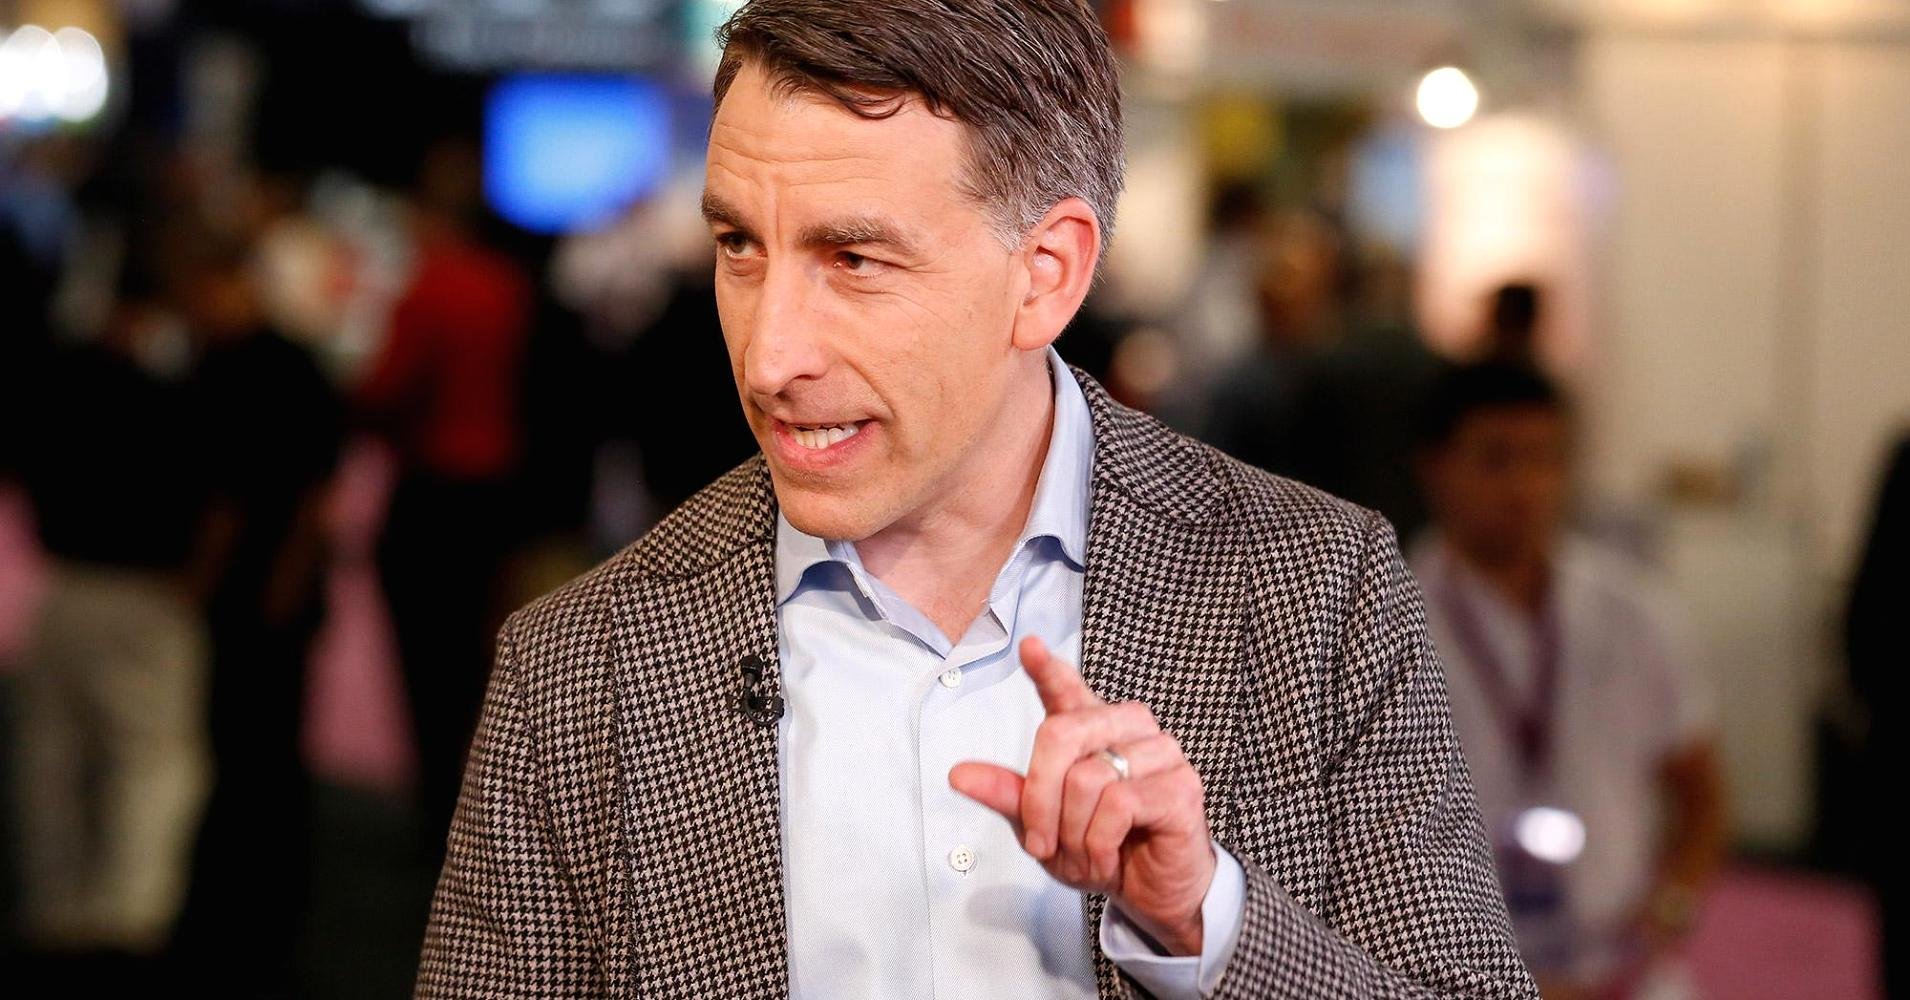 Silicon Valley will soon see a 'mass migration' of tech companies and talent, says Redfin CEO